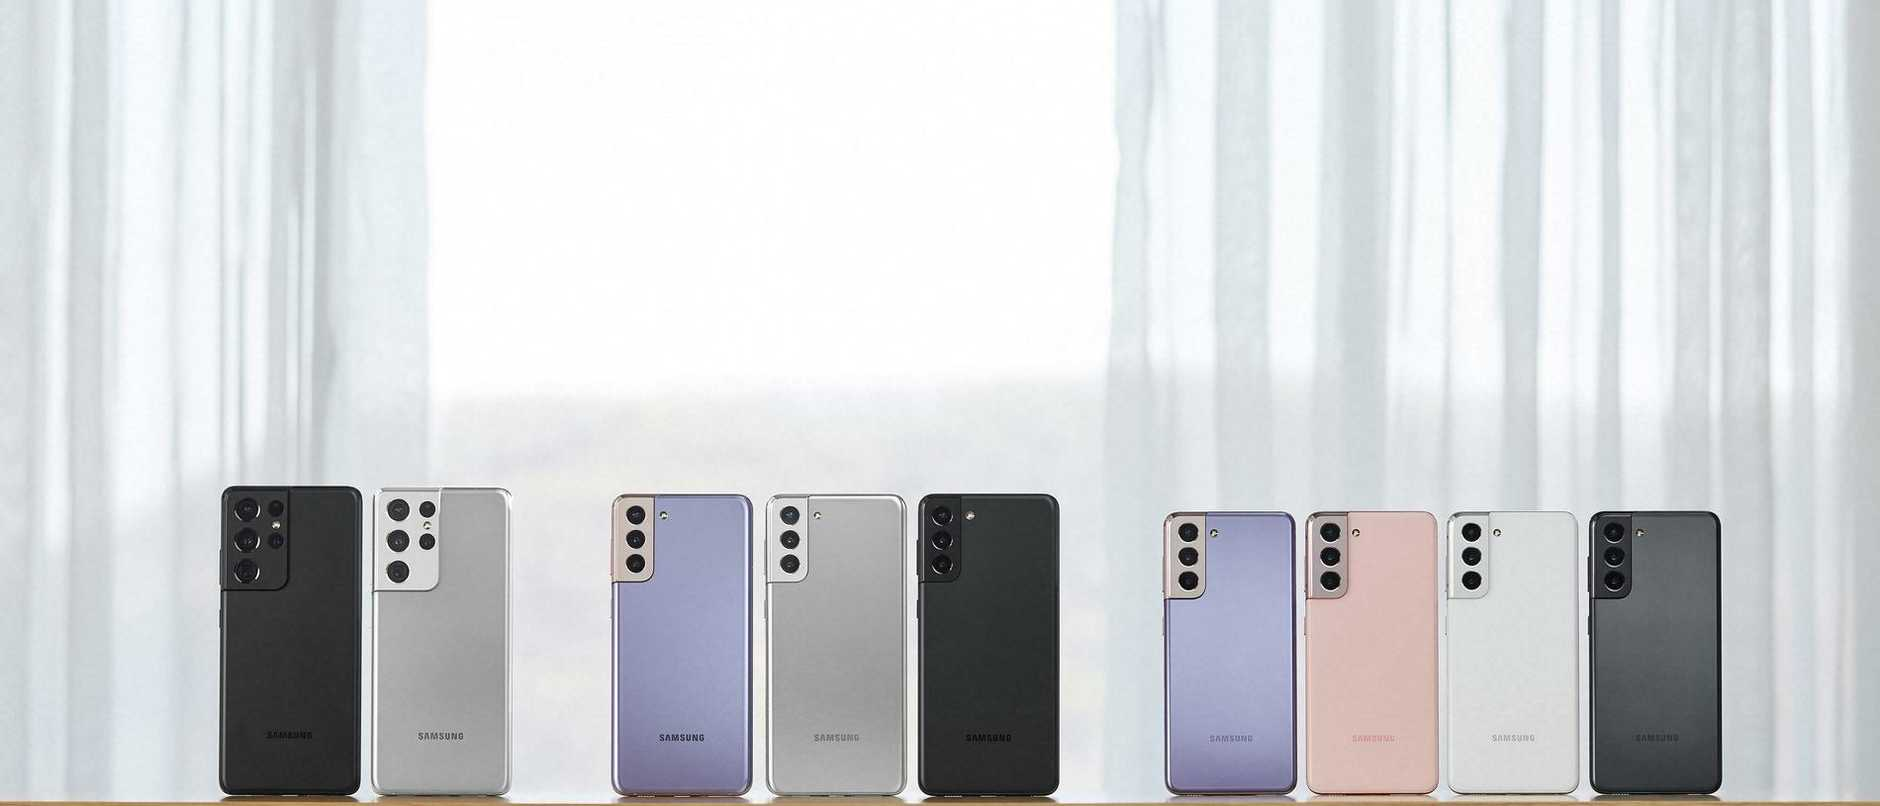 Samsung has announced (L-R) the S21 Ultra, S21+ and S21.